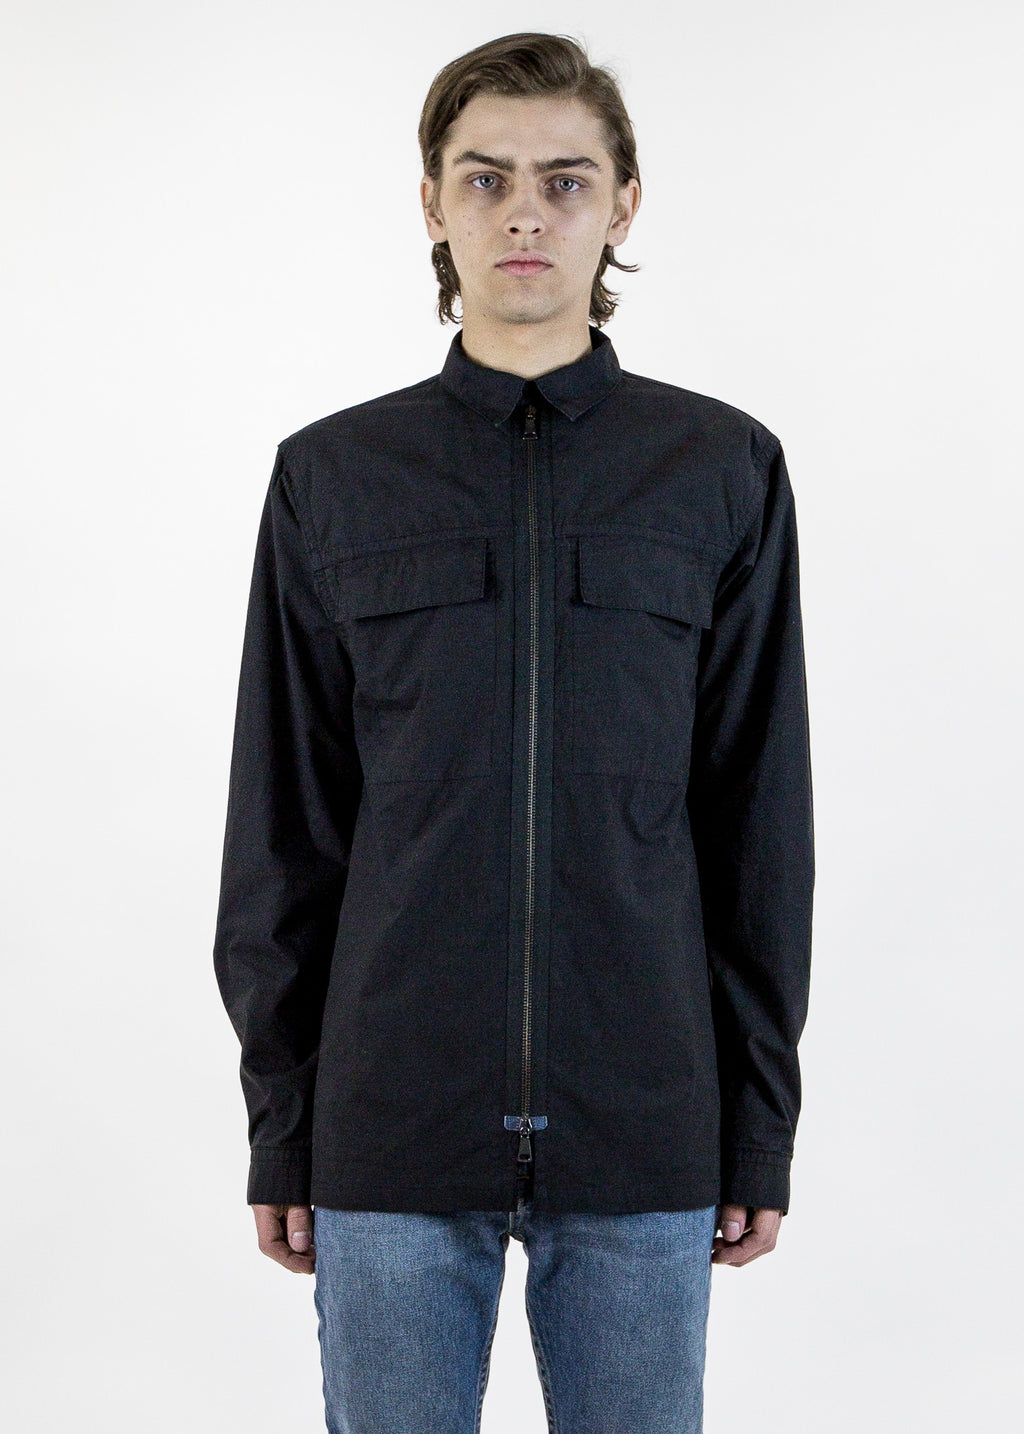 Helmut Lang, Double Cloth LS Zip Shirt, 017 Shop